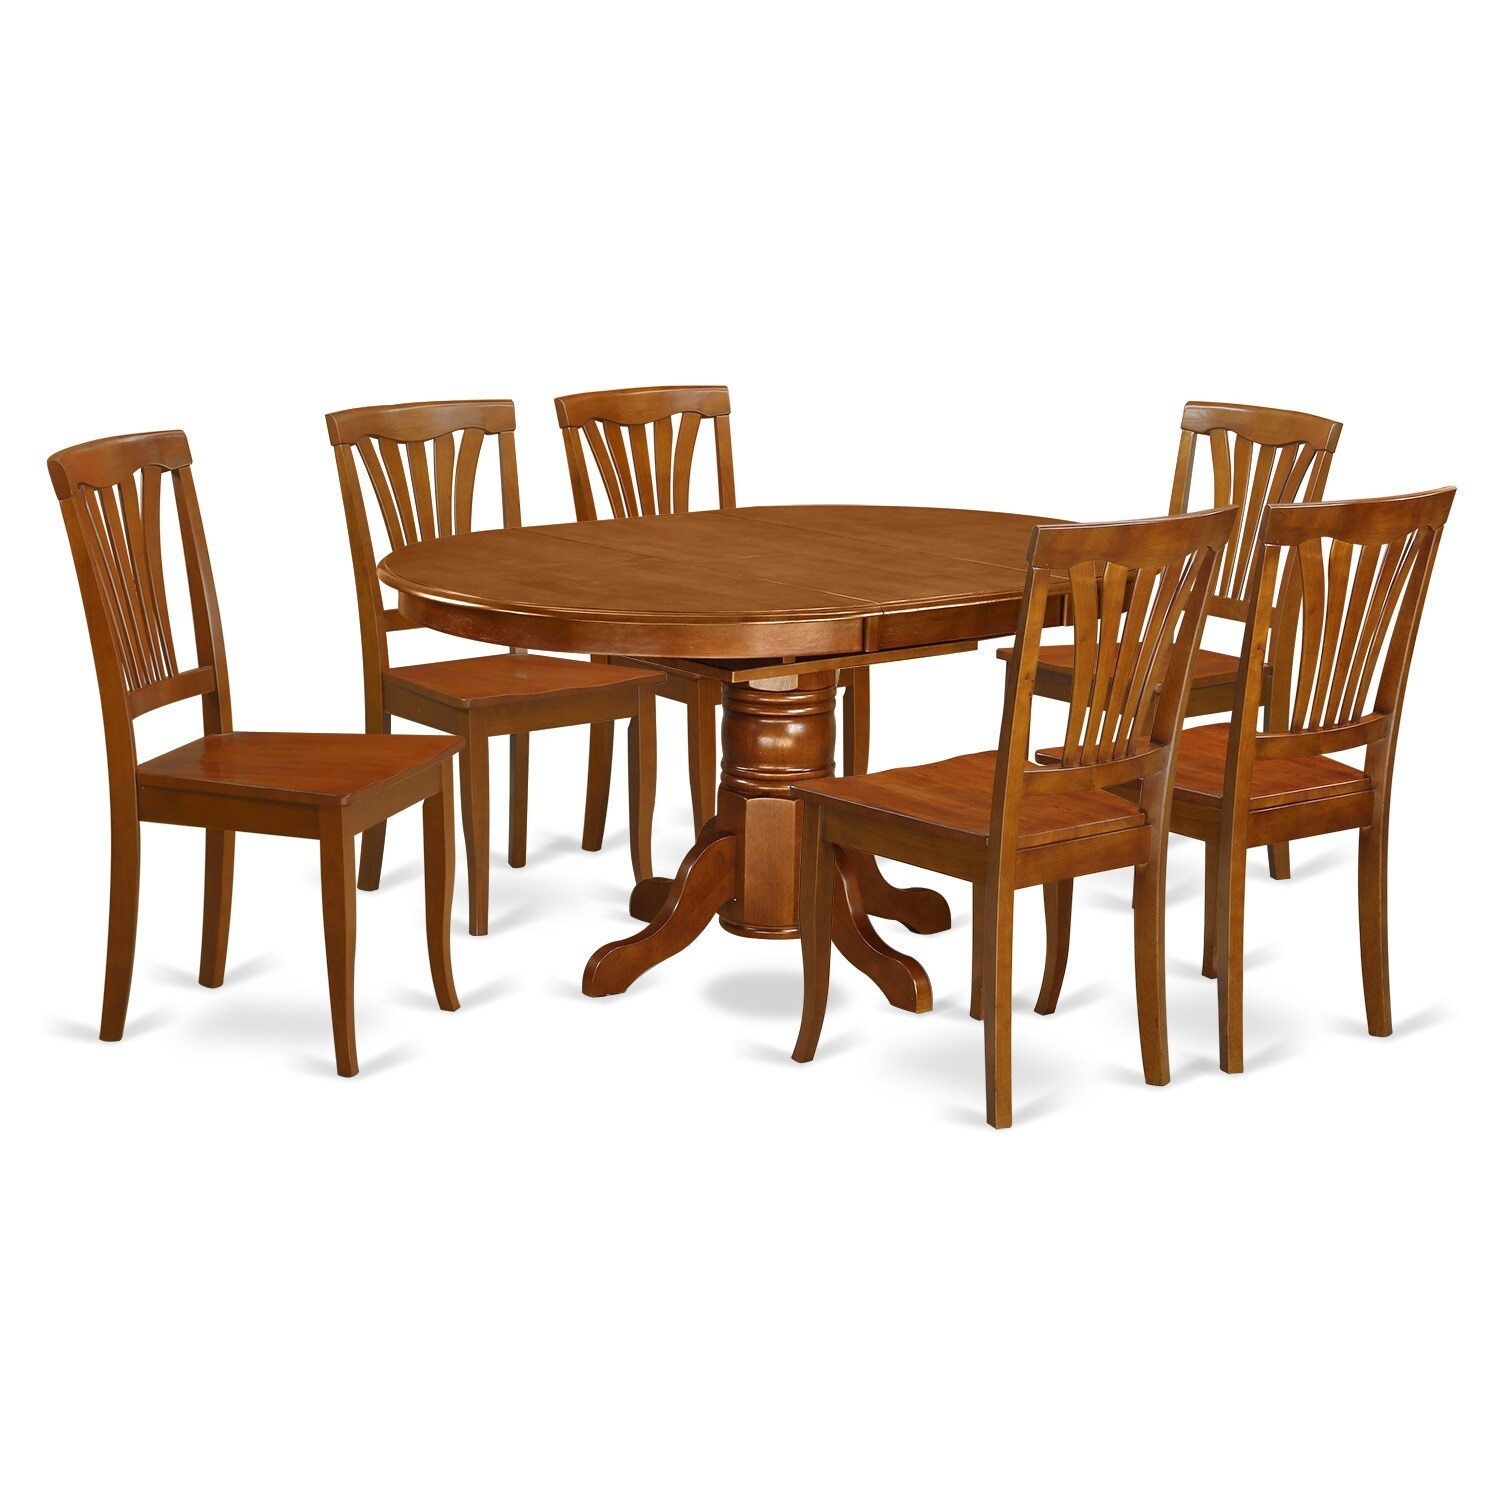 7 Piece Oval Dining Room Table With Leaf And 6 Chairs Free Shipping Today 10296404